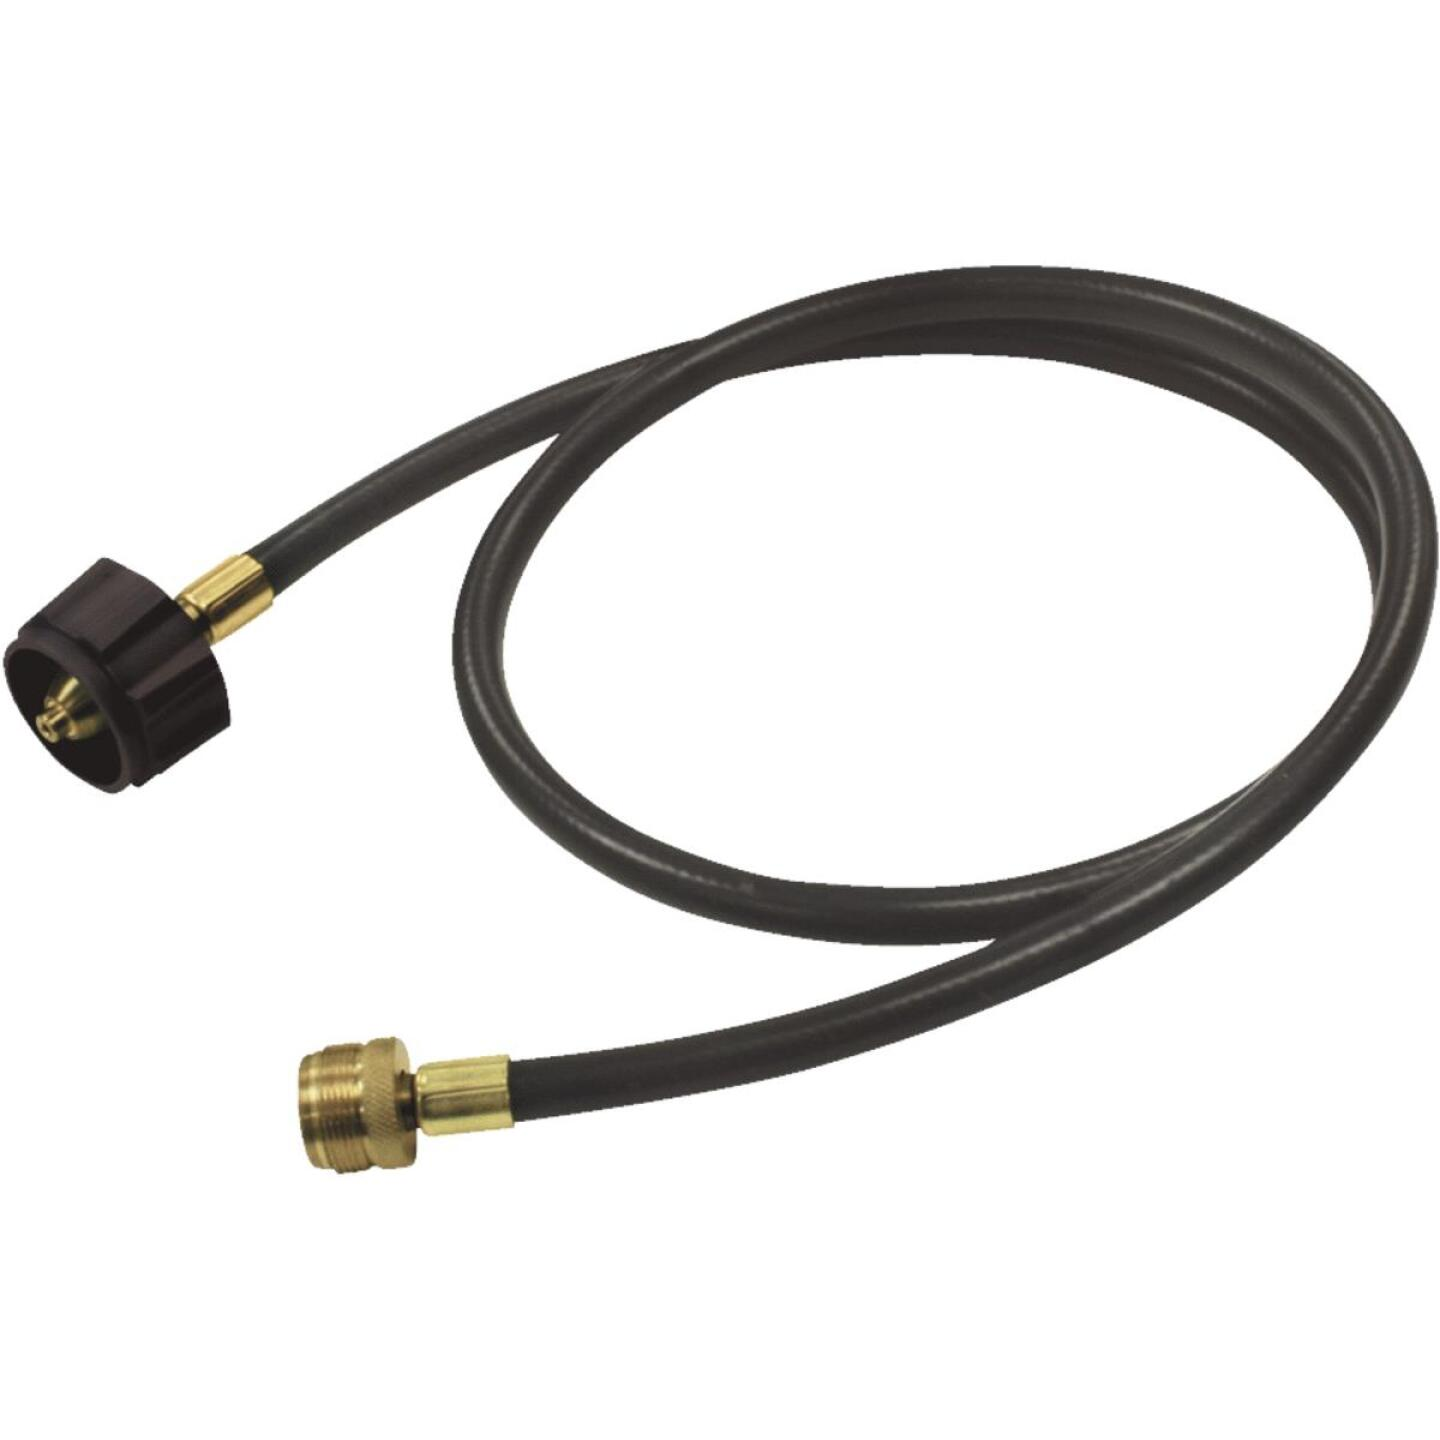 GrillPro 4 Ft. 1/2 In. PVC LP Hose with Adapter Image 1